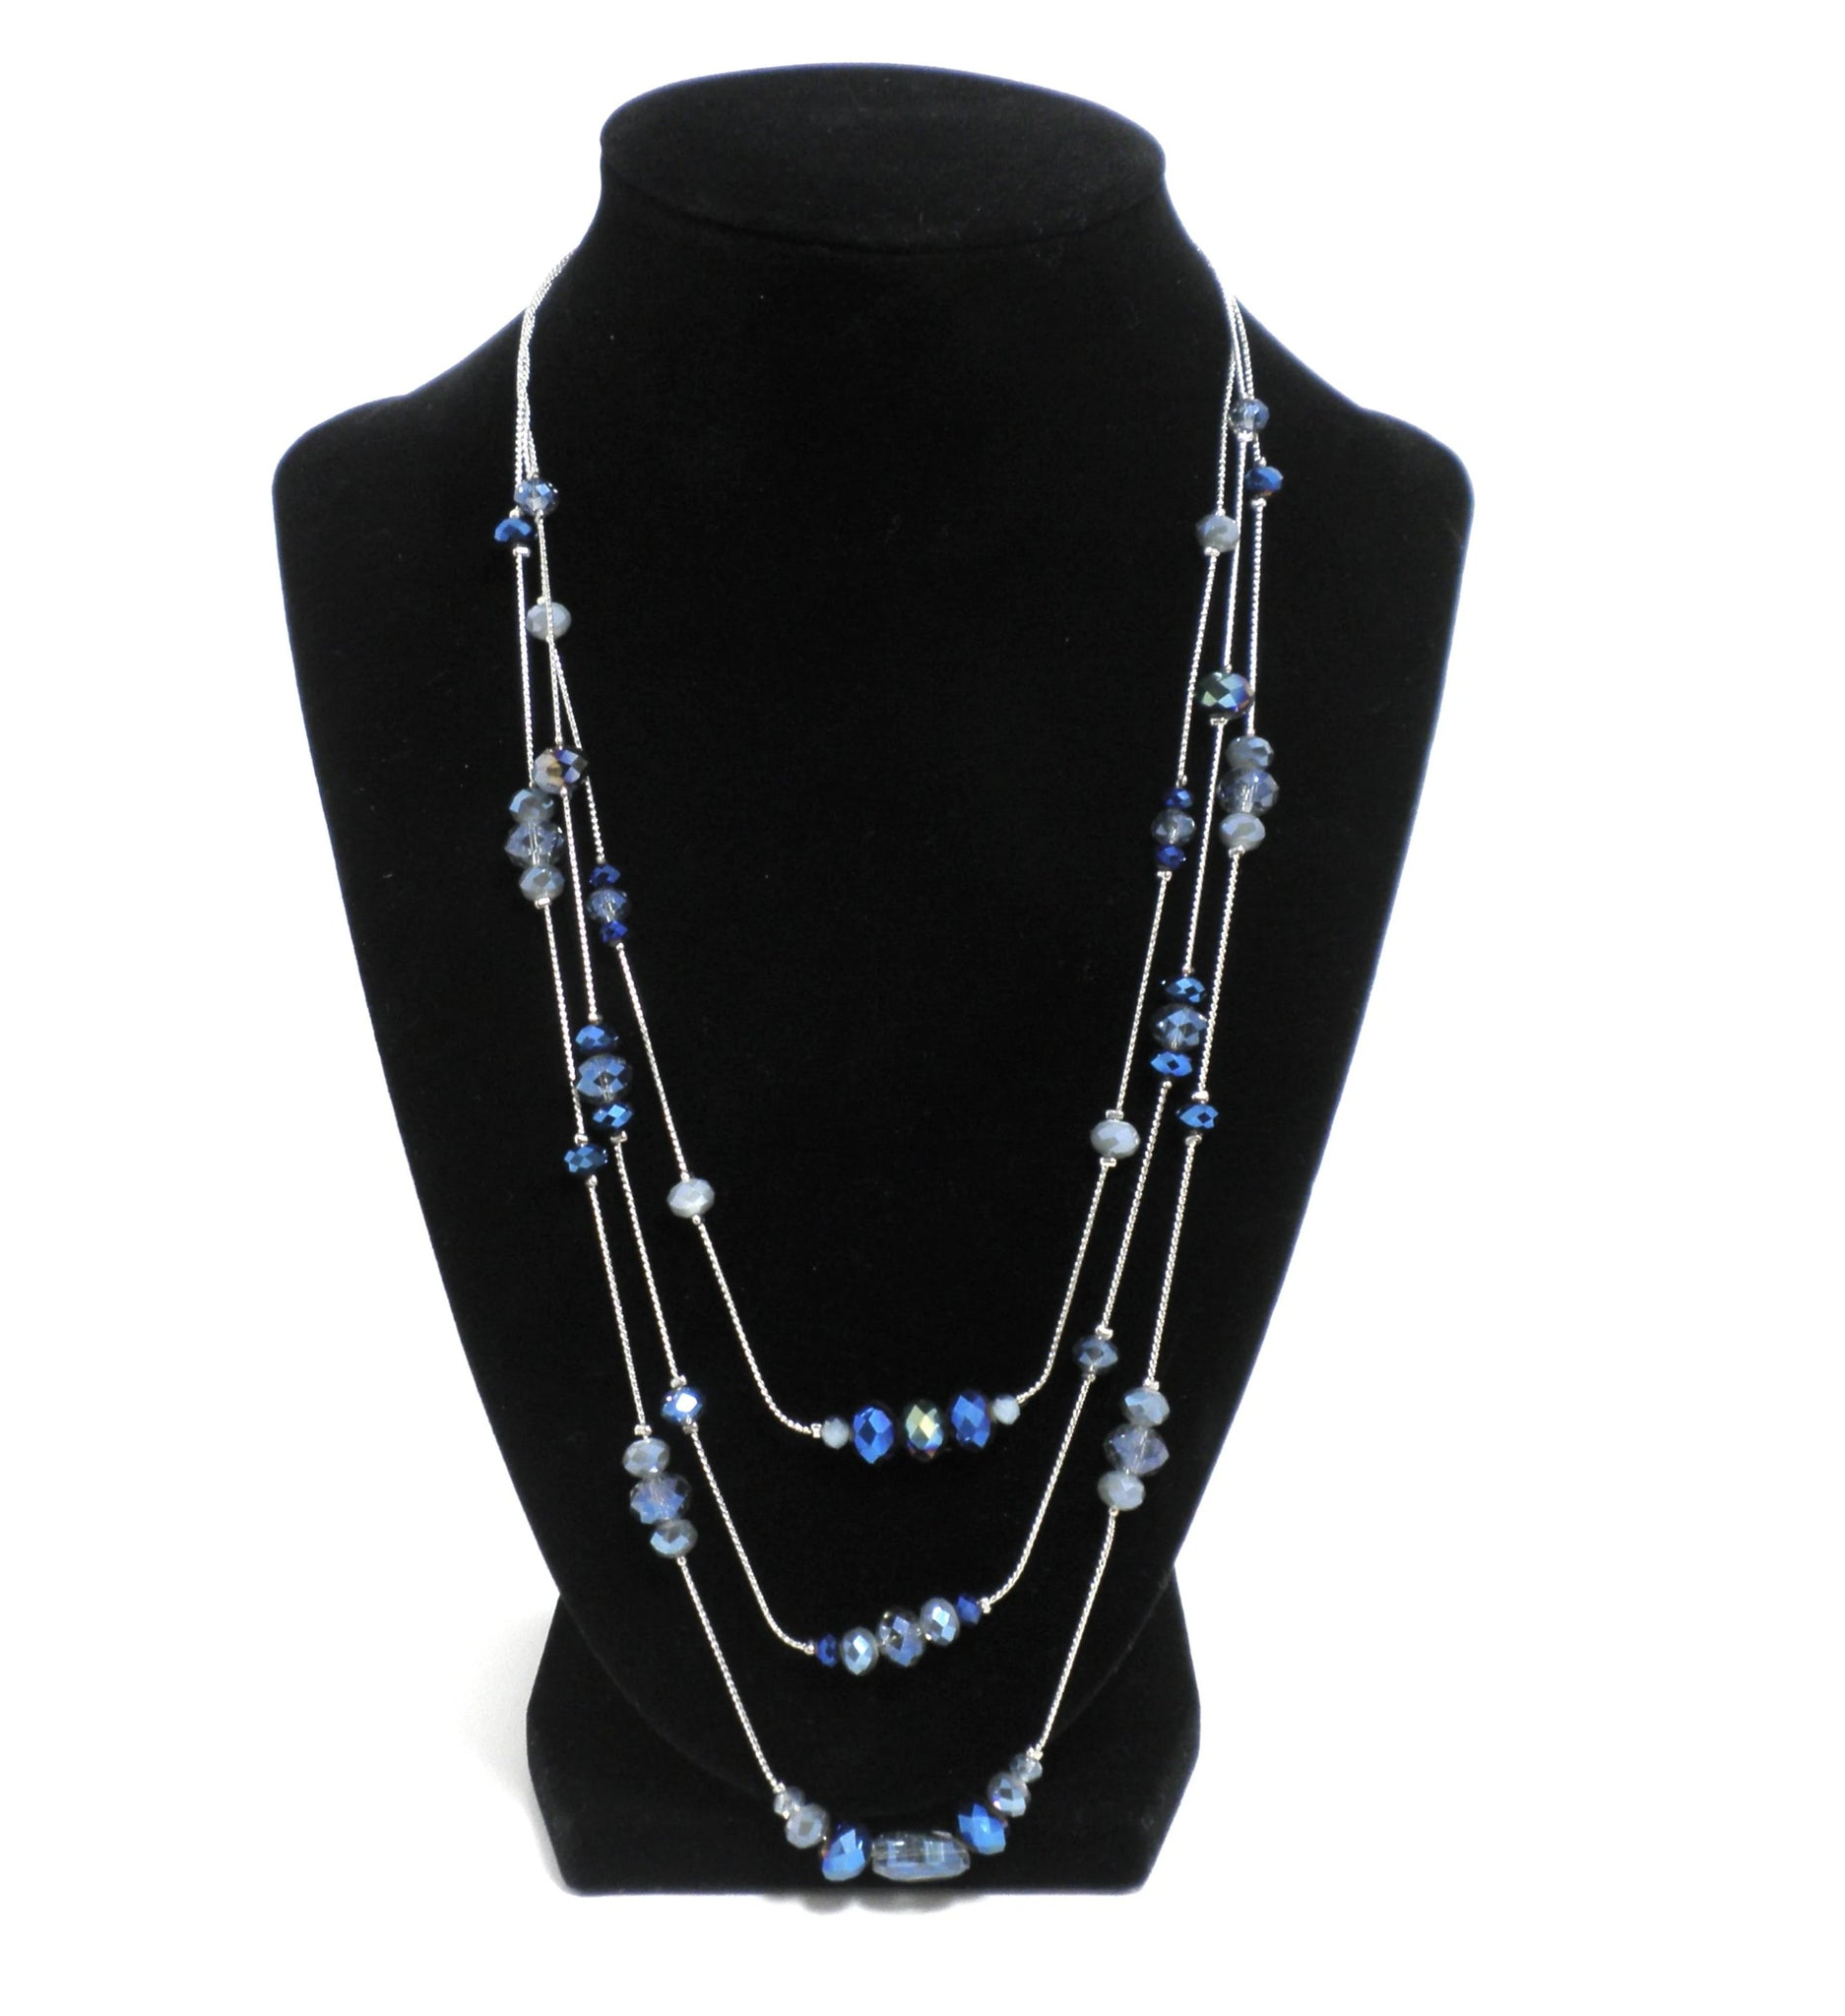 Blue Beaded Layered Silver Necklace - The Fashion Foundation